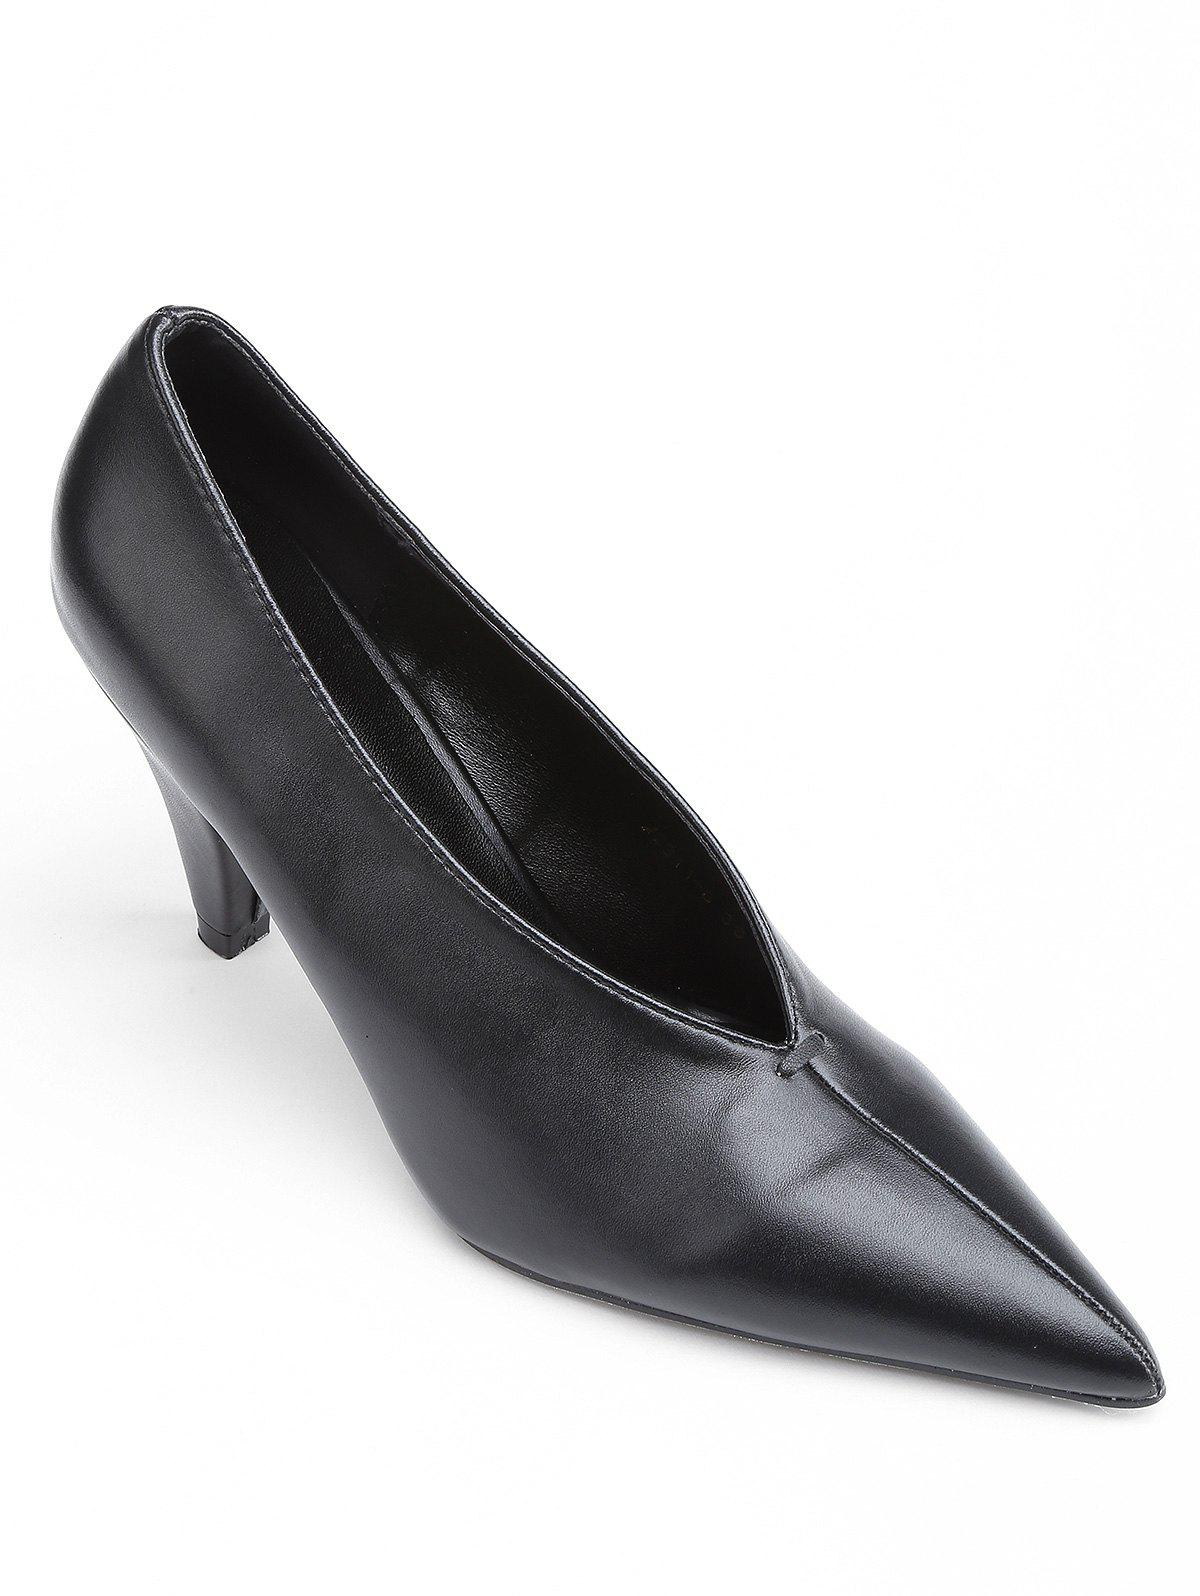 Point Toe V Cut High Heel Pumps - BLACK 37